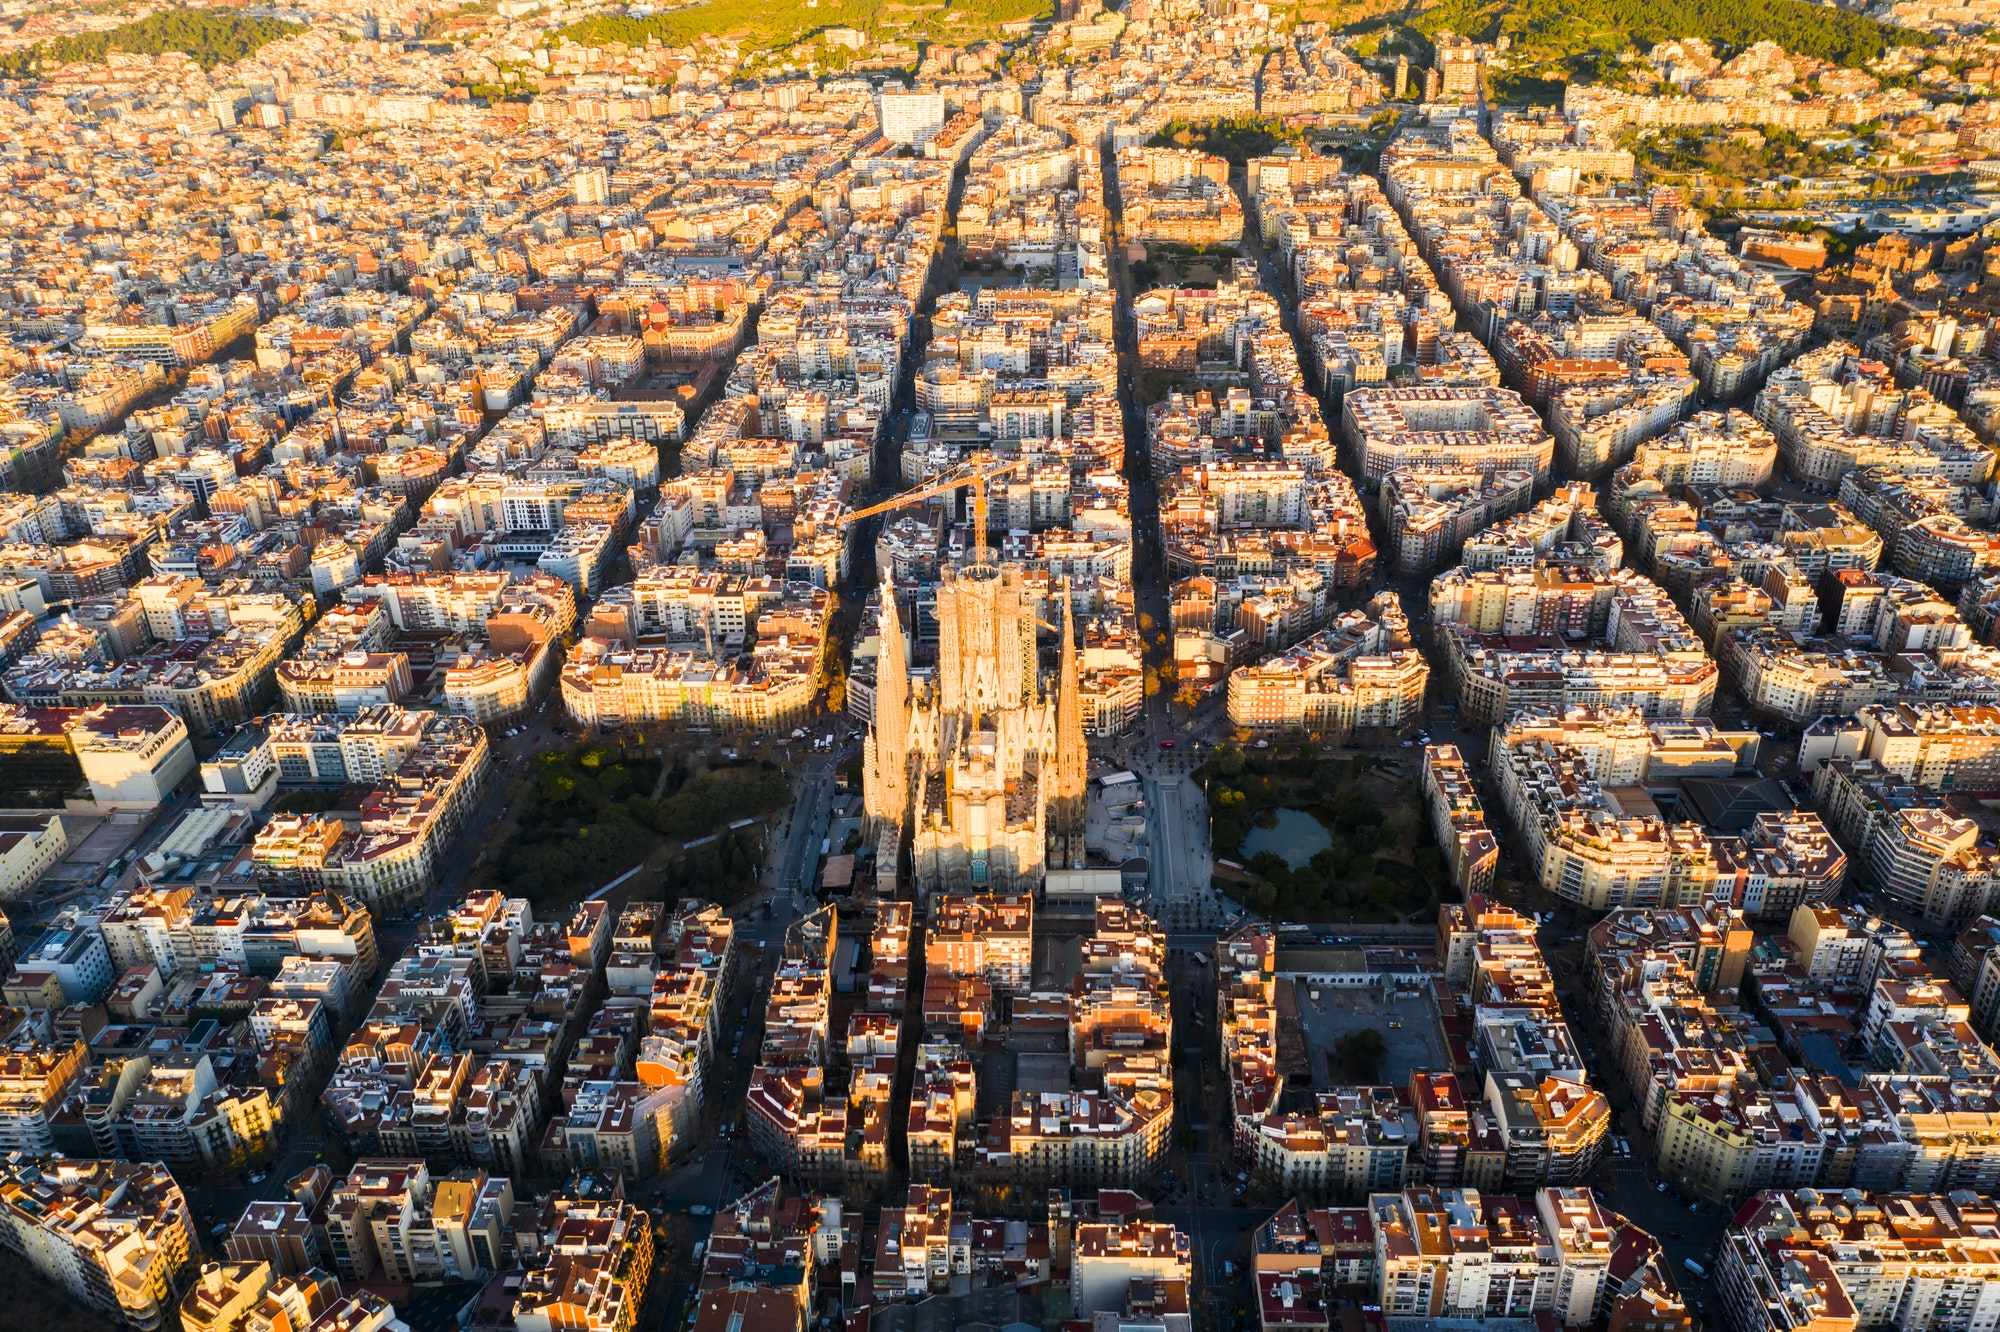 Prices fell 2.1% in Barcelona in May